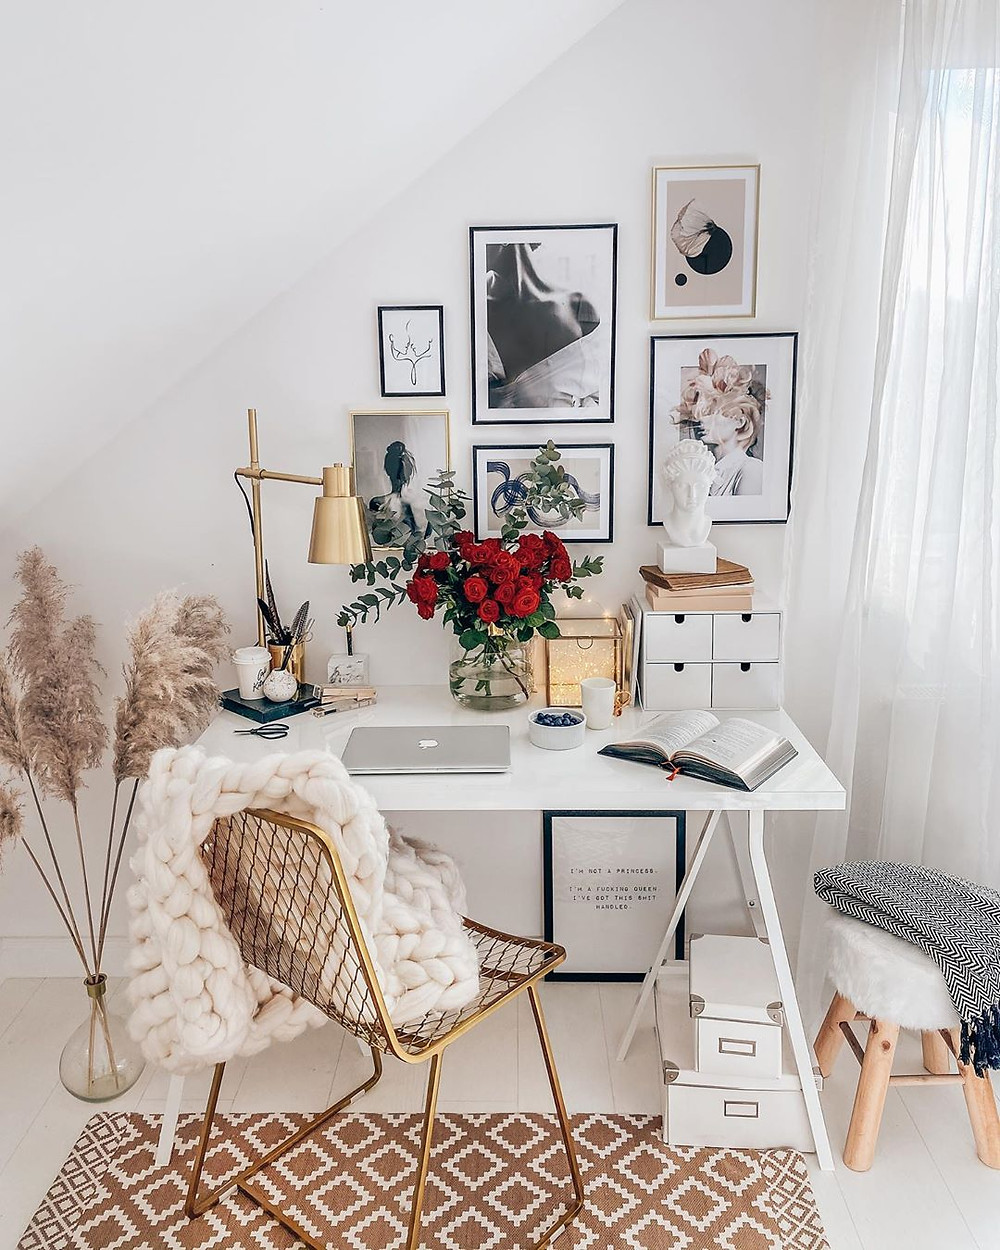 White and gold home office decor idea with pampas grass and wall art collage gallery